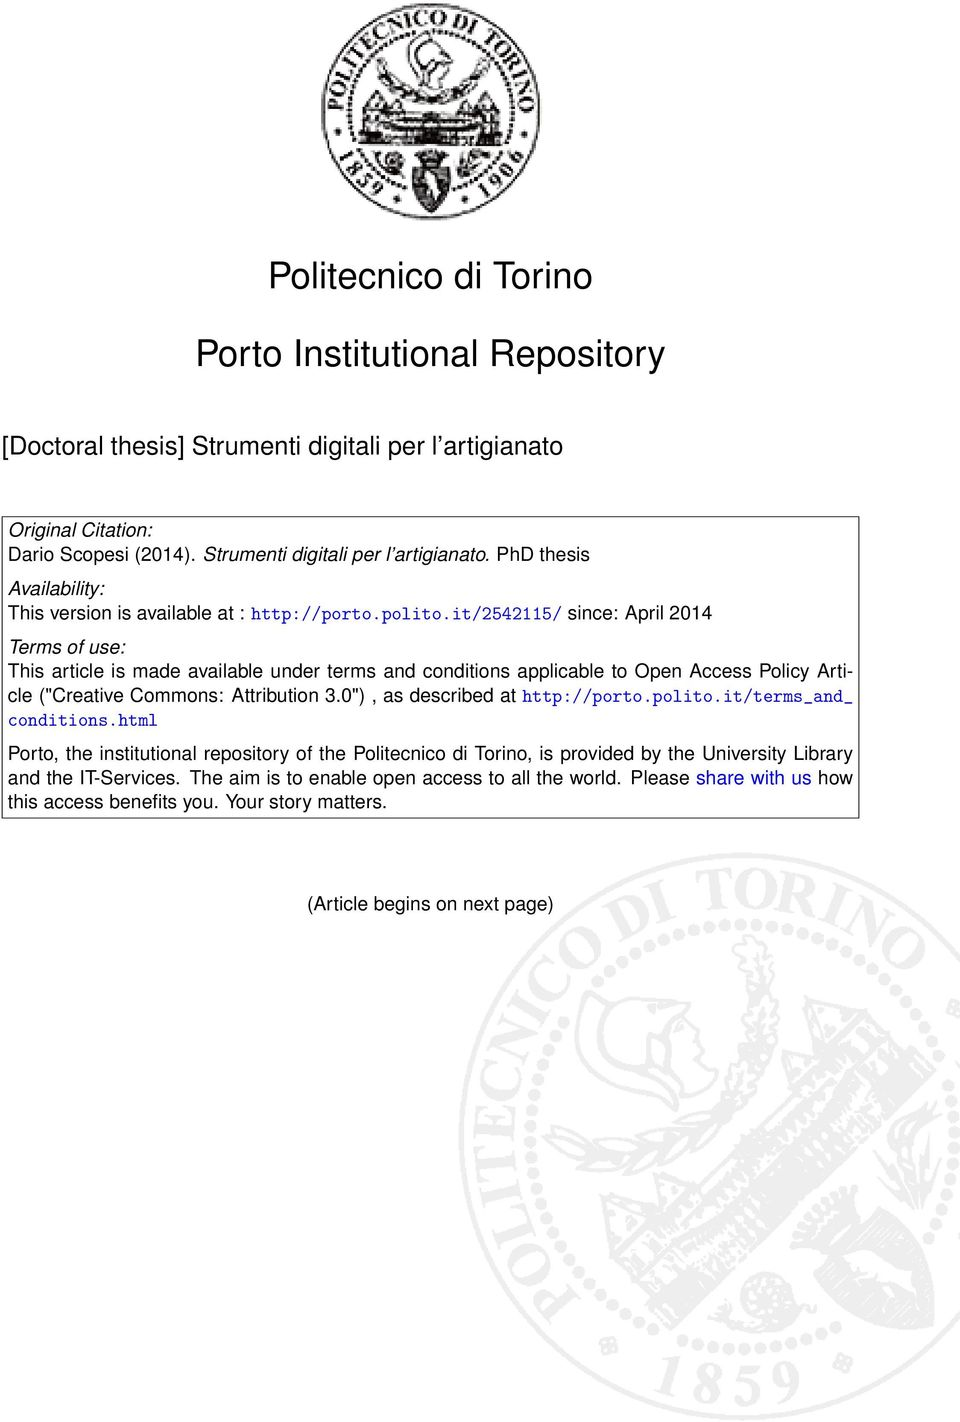 "0""), as described at http://porto.polito.it/terms_and_ conditions.html Porto, the institutional repository of the Politecnico di Torino, is provided by the University Library and the IT-Services."